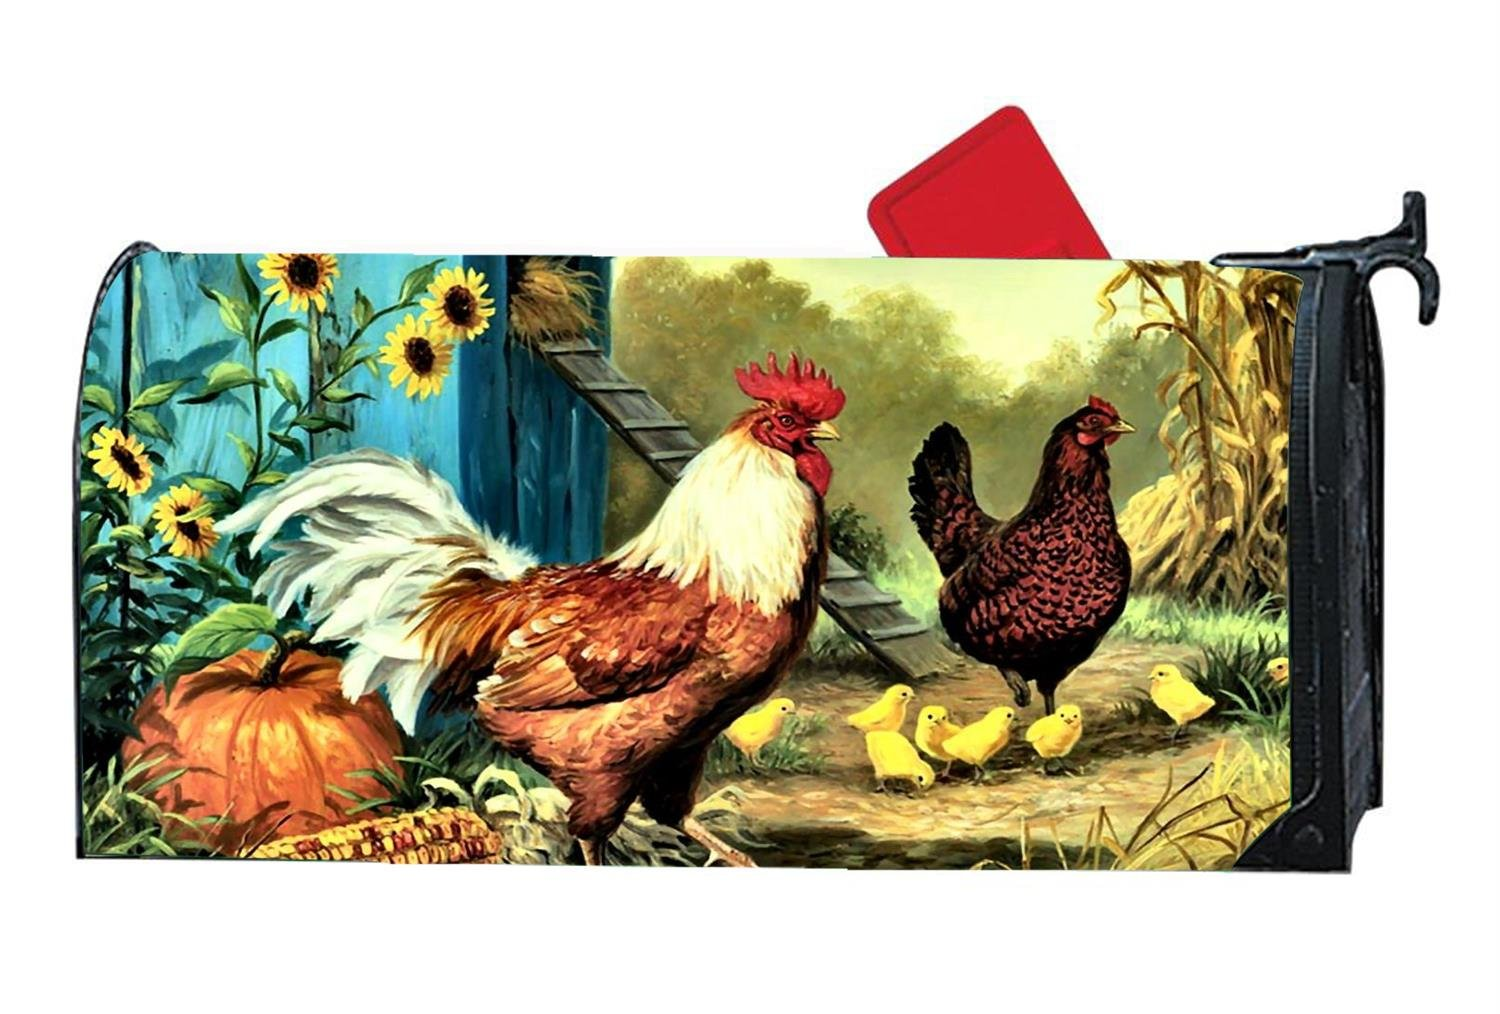 DIY Decorative Farm Chickens Magnetic Mailbox Cover Standard Mailbox Wrap with Animals Design